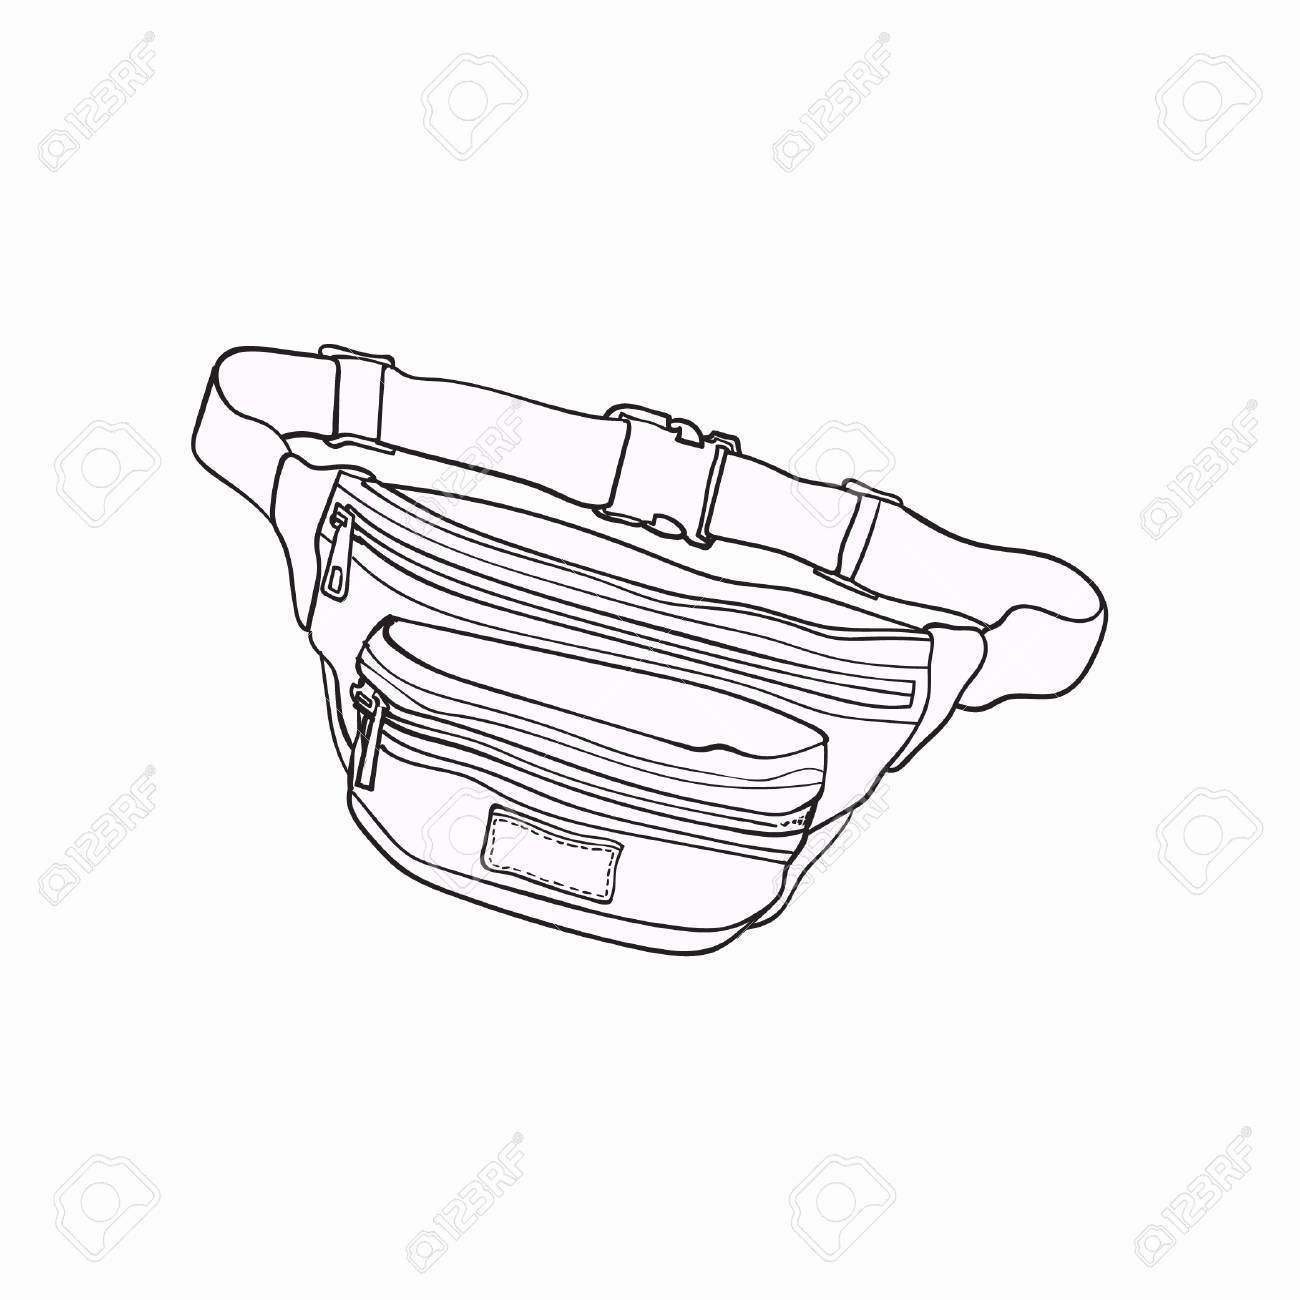 Old fashioned, retro style colorful waist bag, fashion accessory from 90s, sketch vector illustration isolated on white background. Hand drawn waist bag, pack, popular personal item from nineties - 82488879